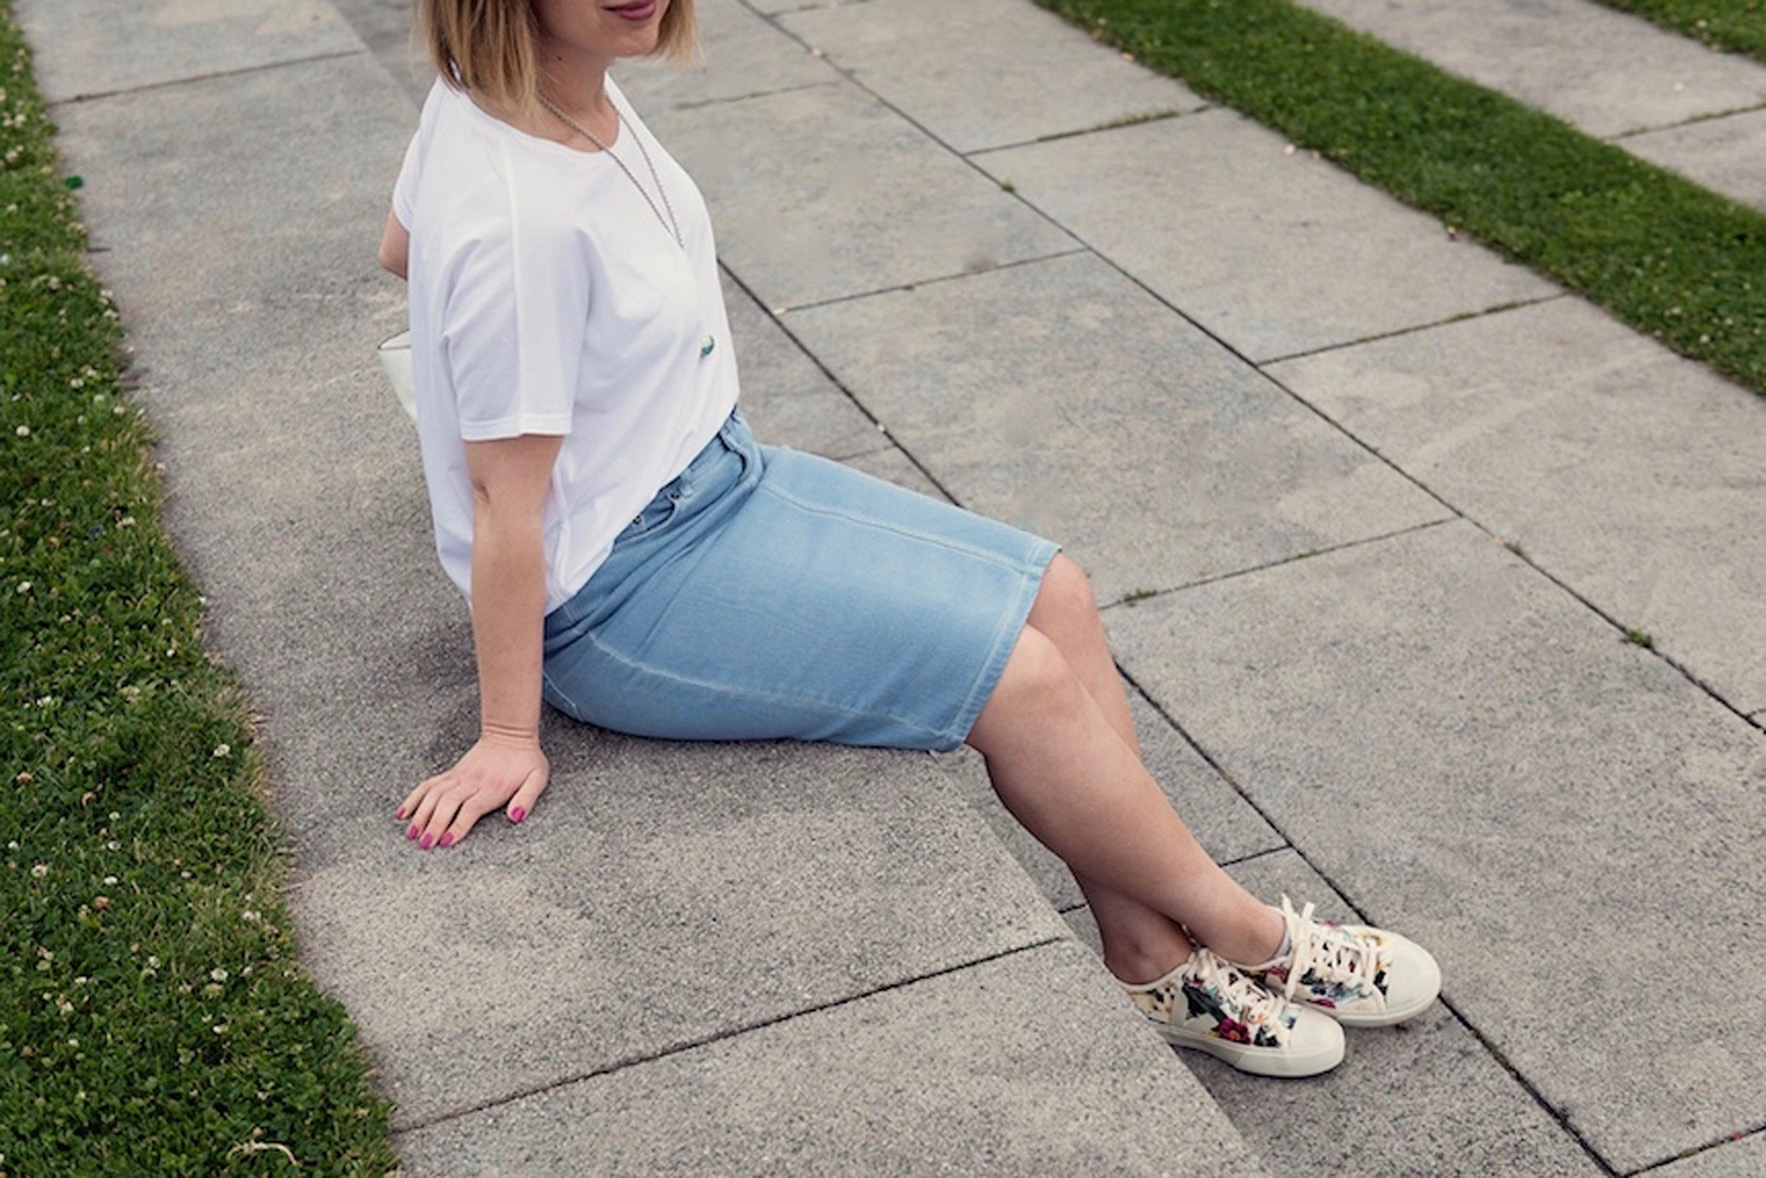 greenlooksgreat-veja_sneakers-outfit